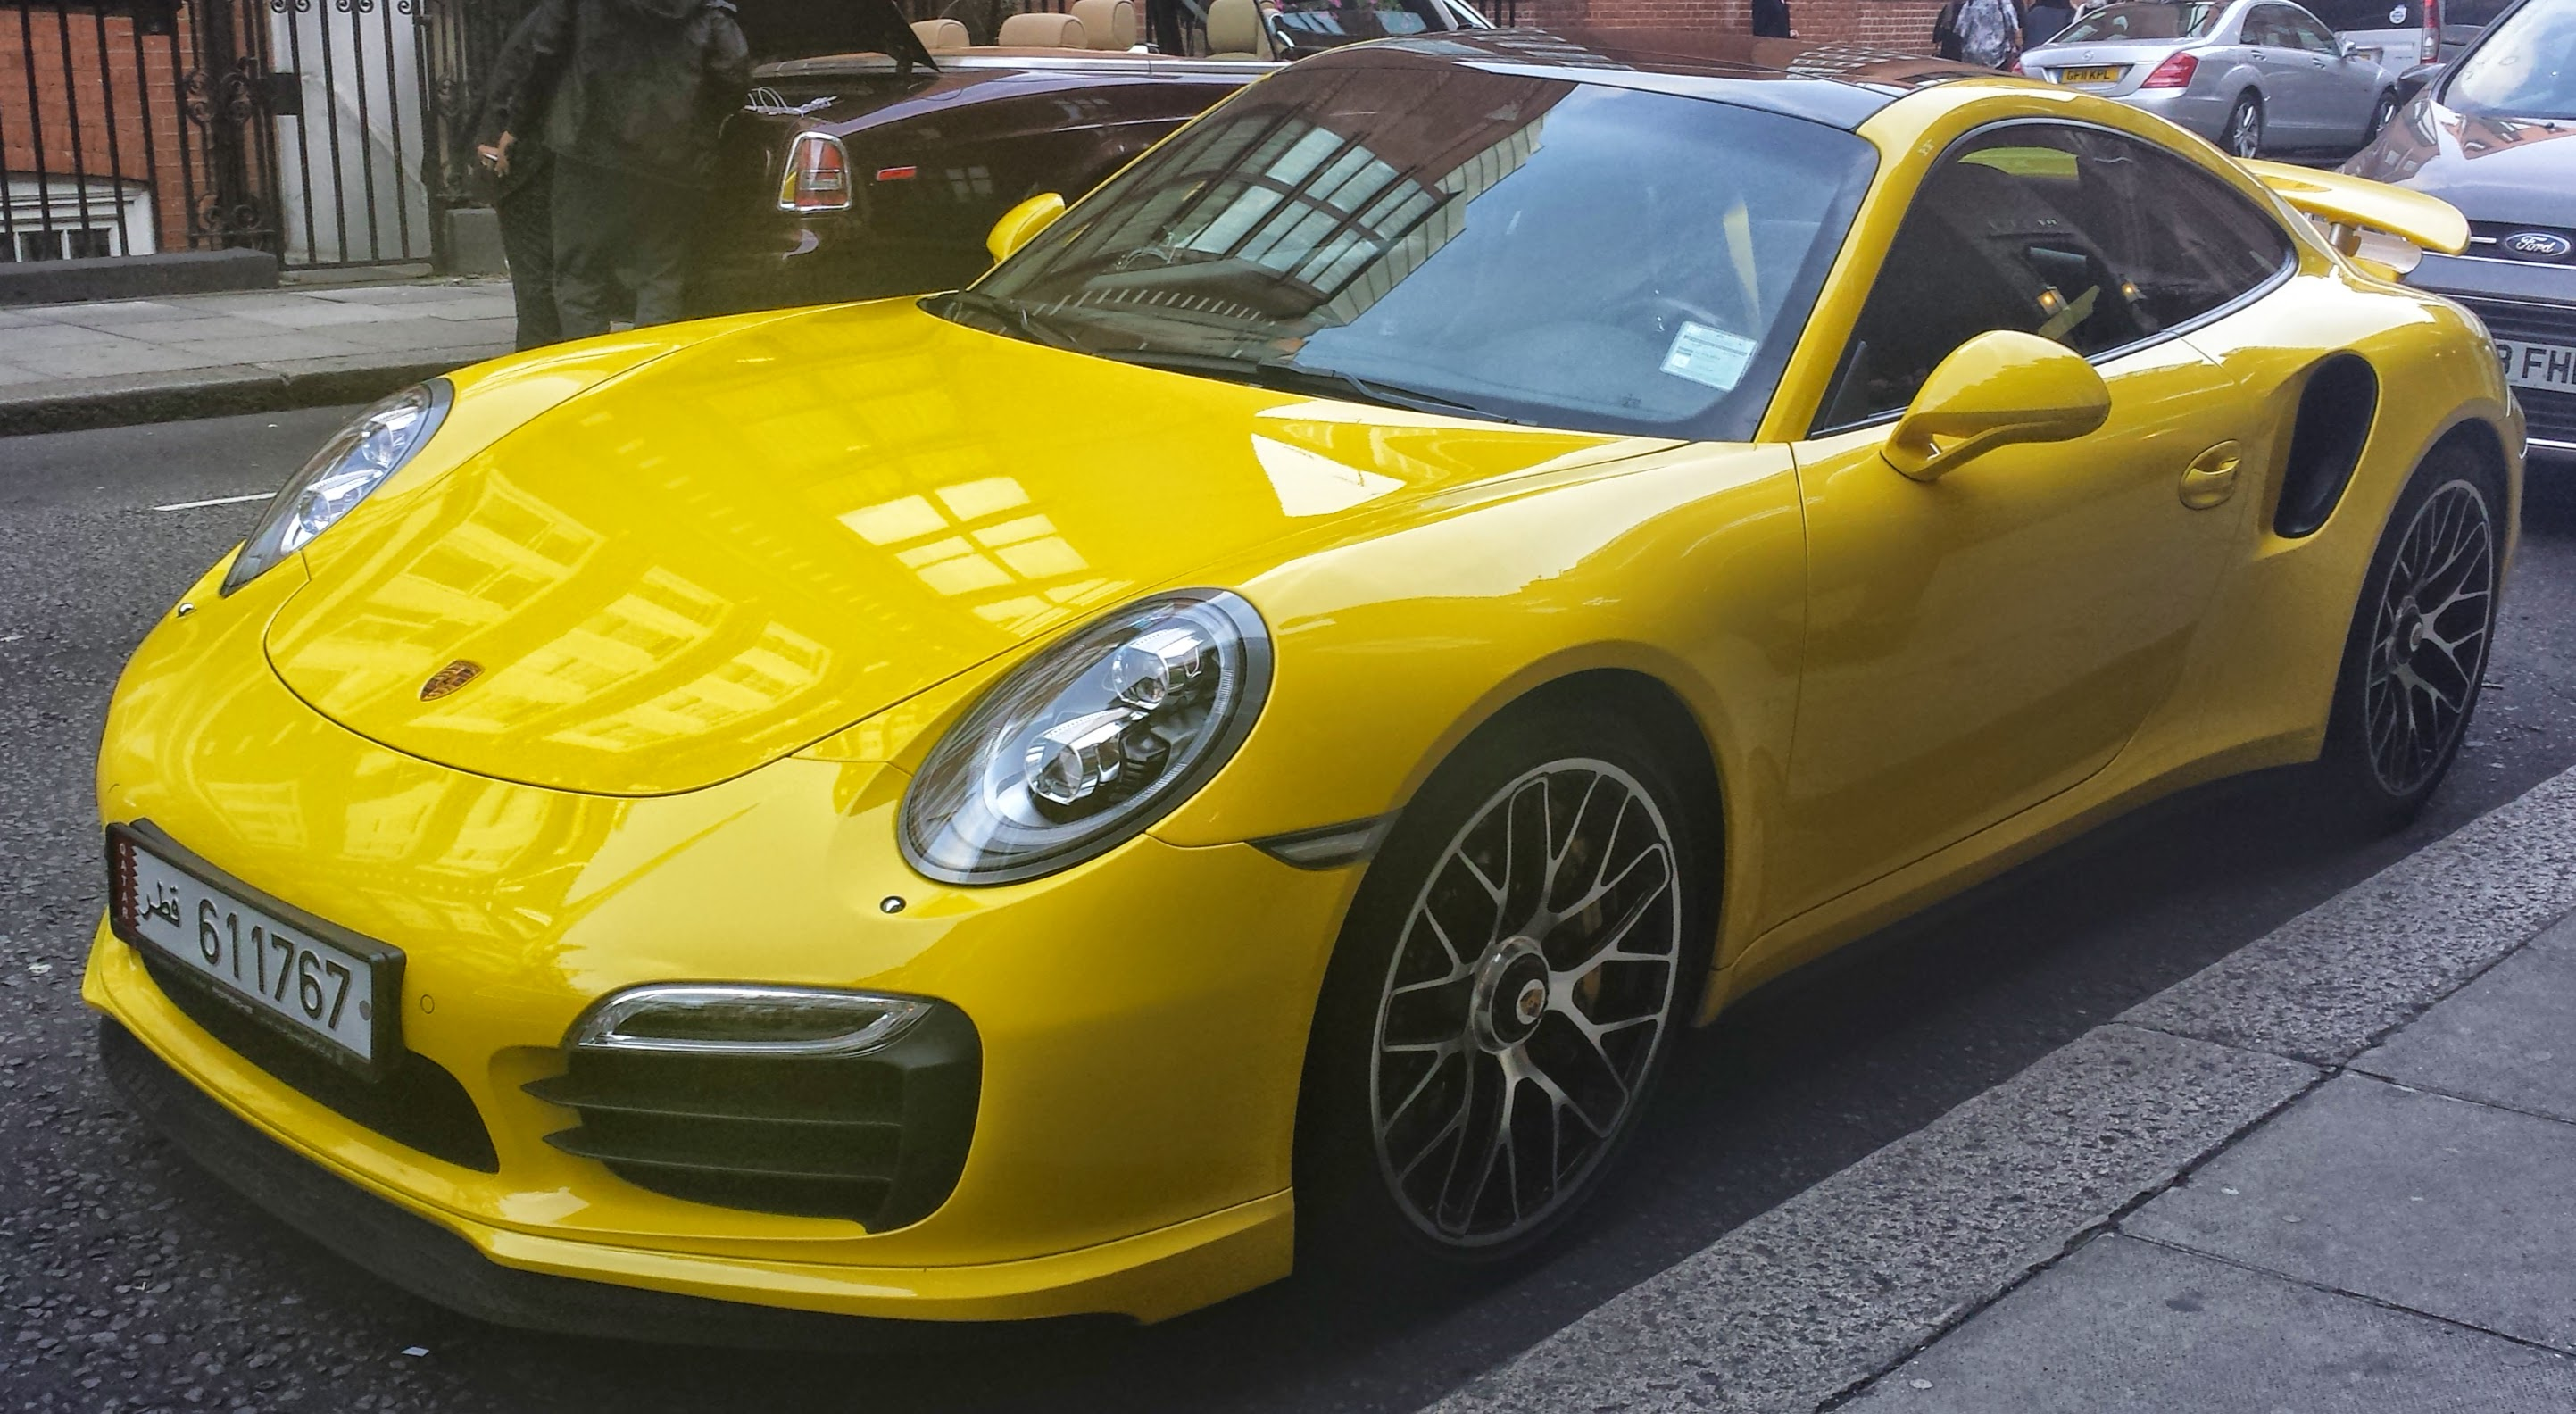 File:Yellow Porsche 911 Turbo S (991) fl1 London14.jpg - Wikimedia